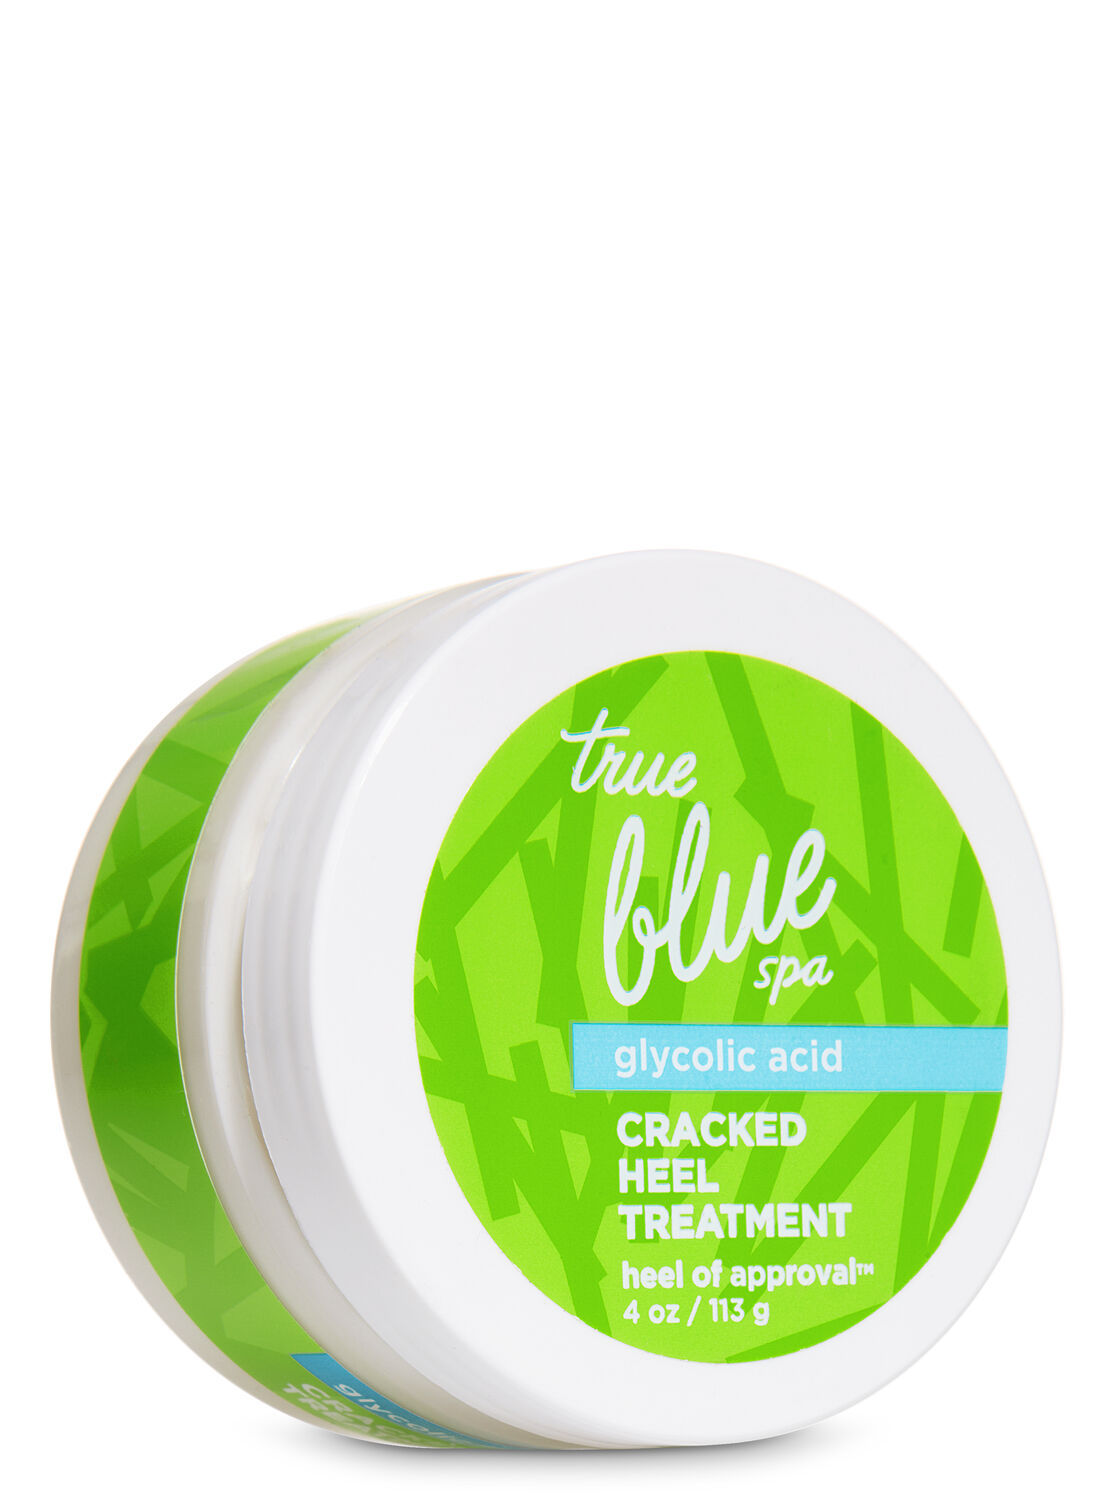 true blue spa products on sale bath body works true blue spa heel of approval cracked heel treatment bath and body works